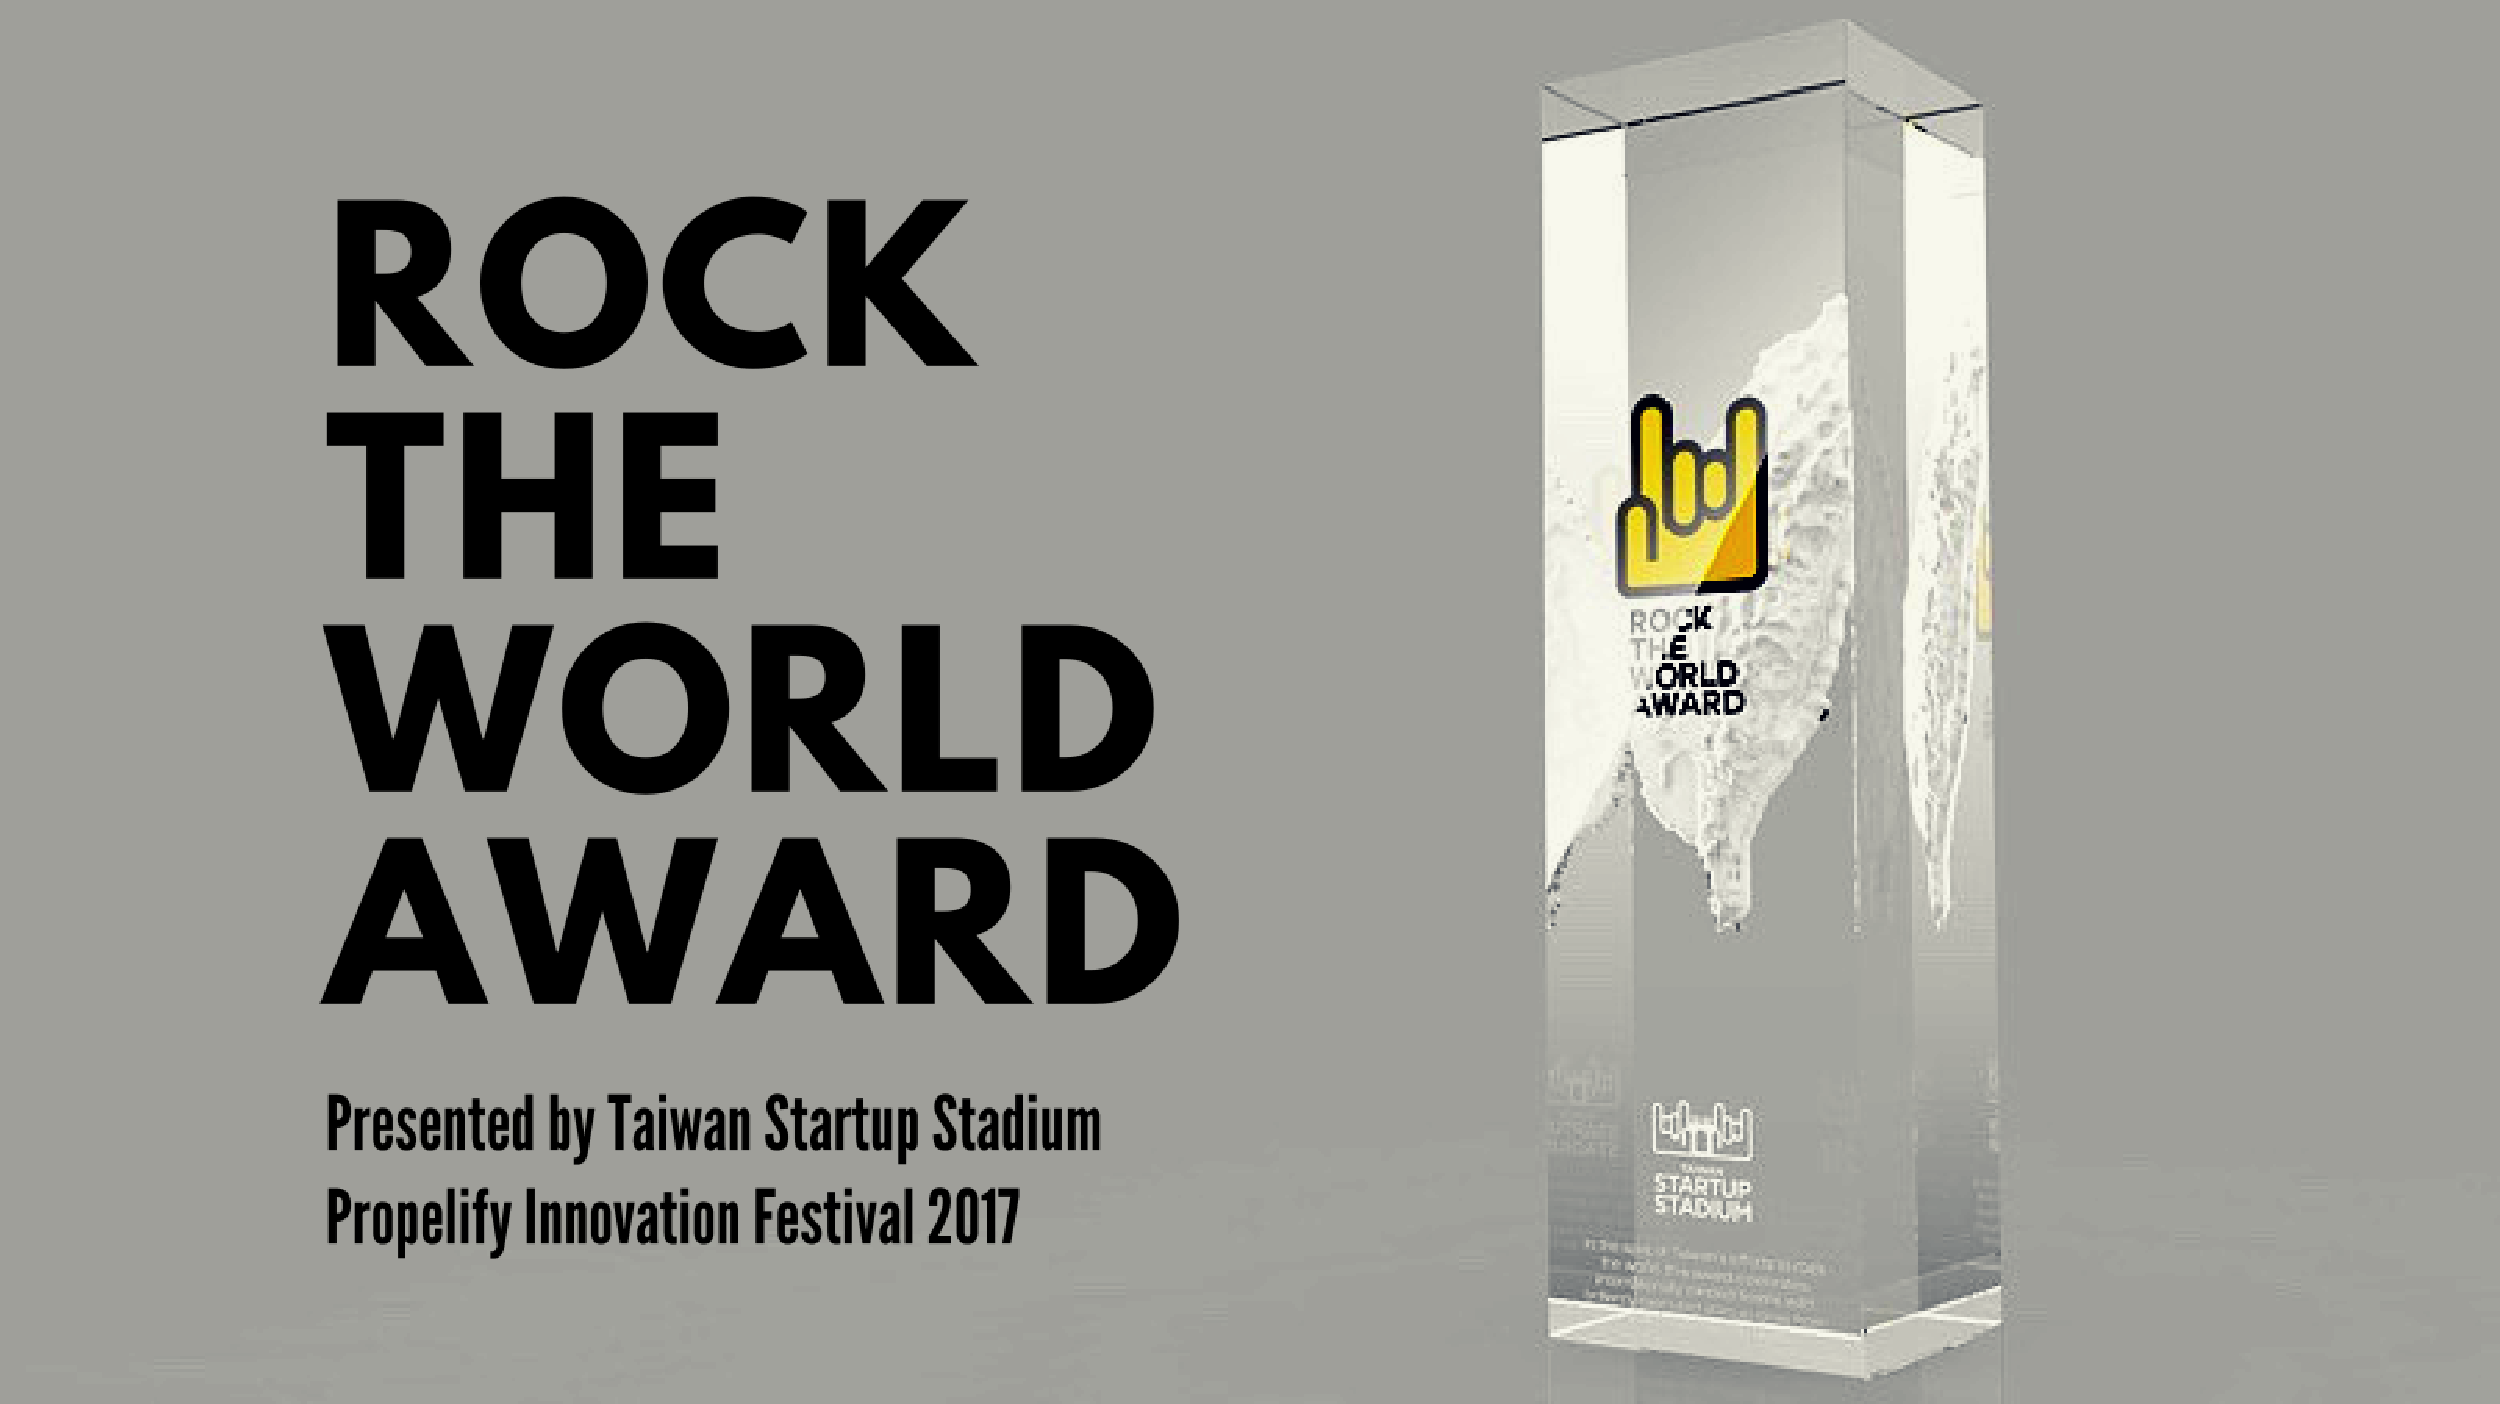 taiwan-startup-stadium-rock-the-world-award